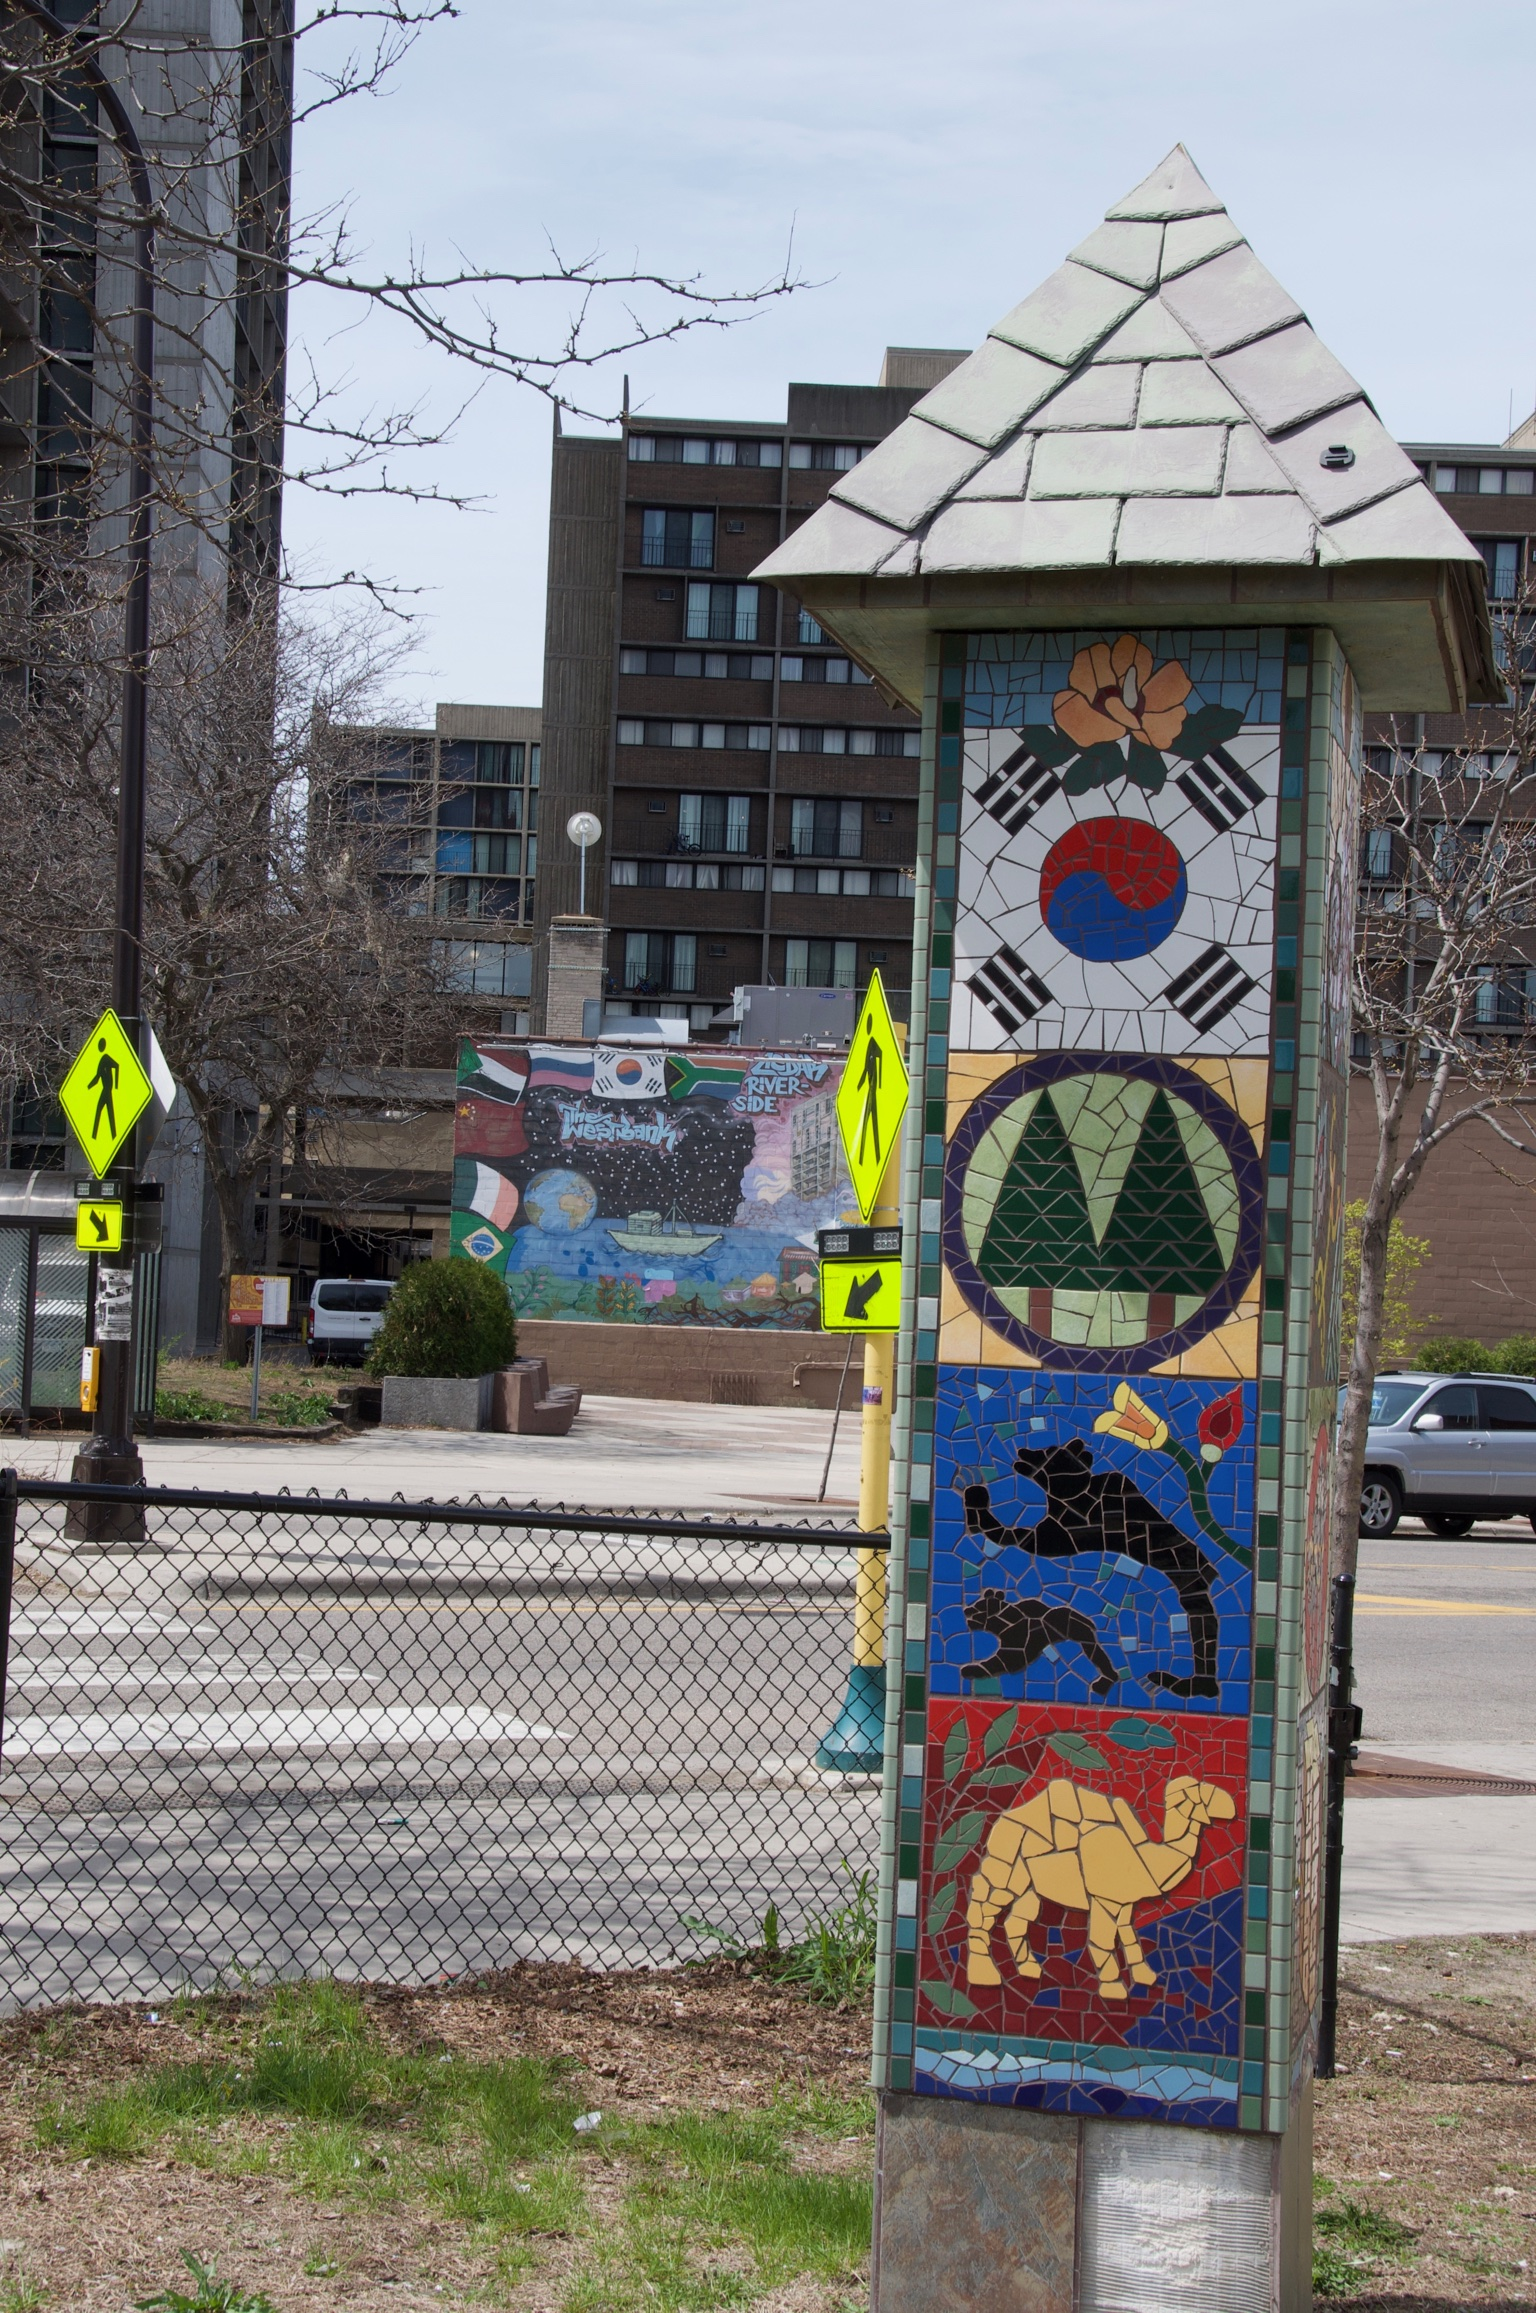 The mosaic signpost features images from varied cultures and environments